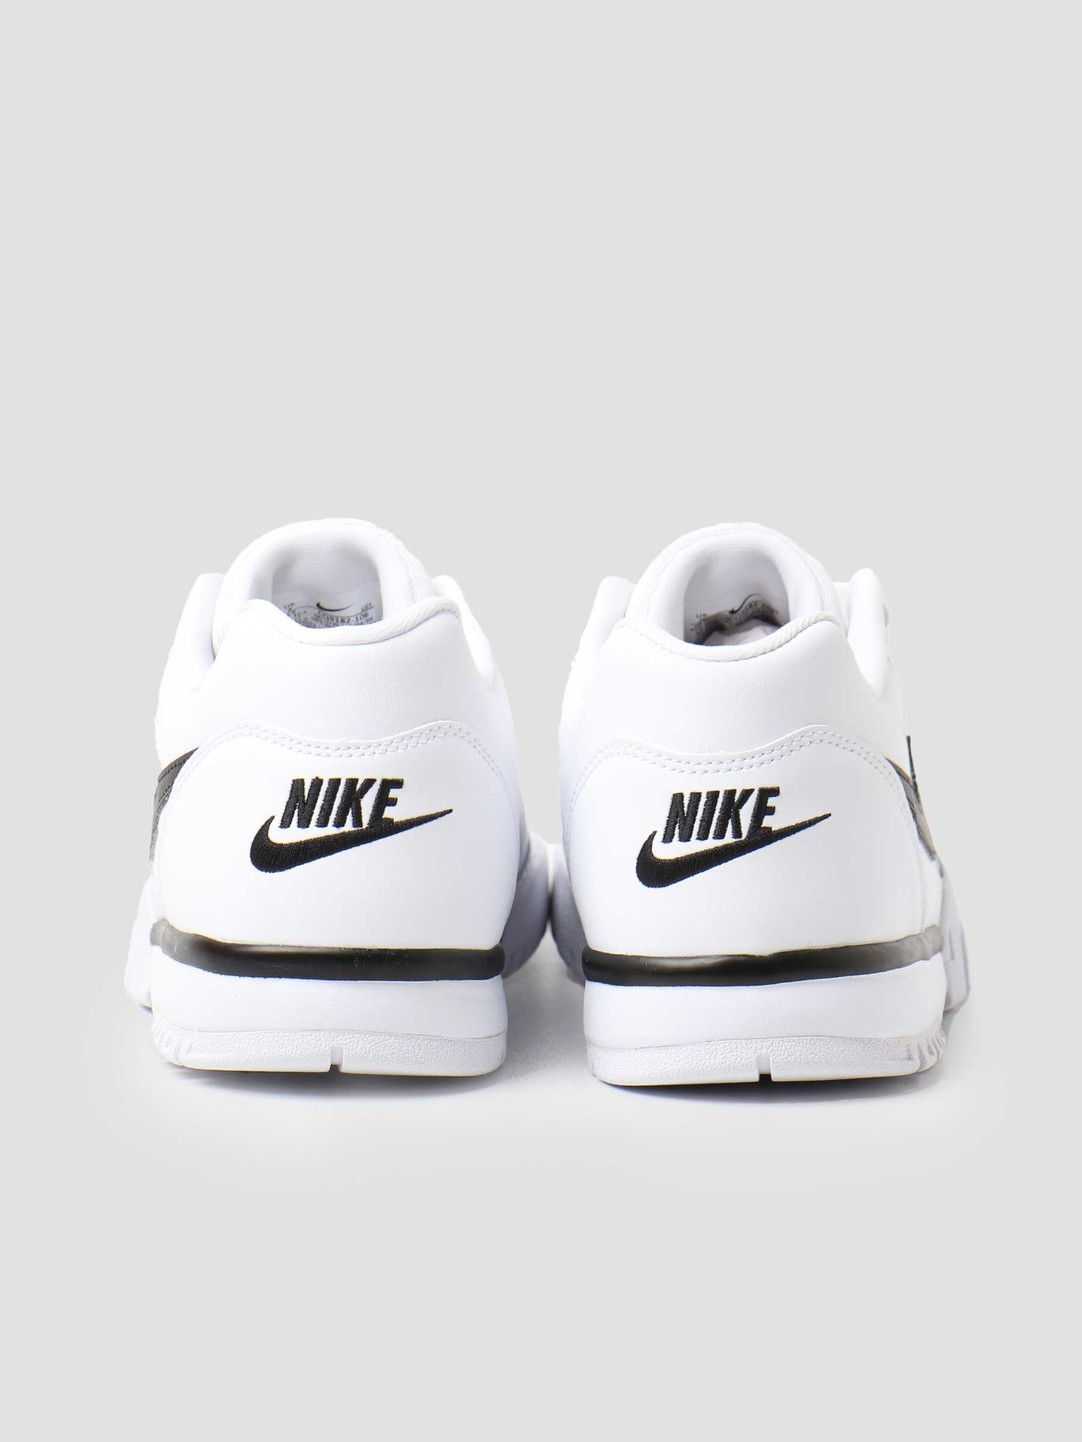 Nike Nike Nike Cross Trainer Low White Black Particle Grey CQ9182-106